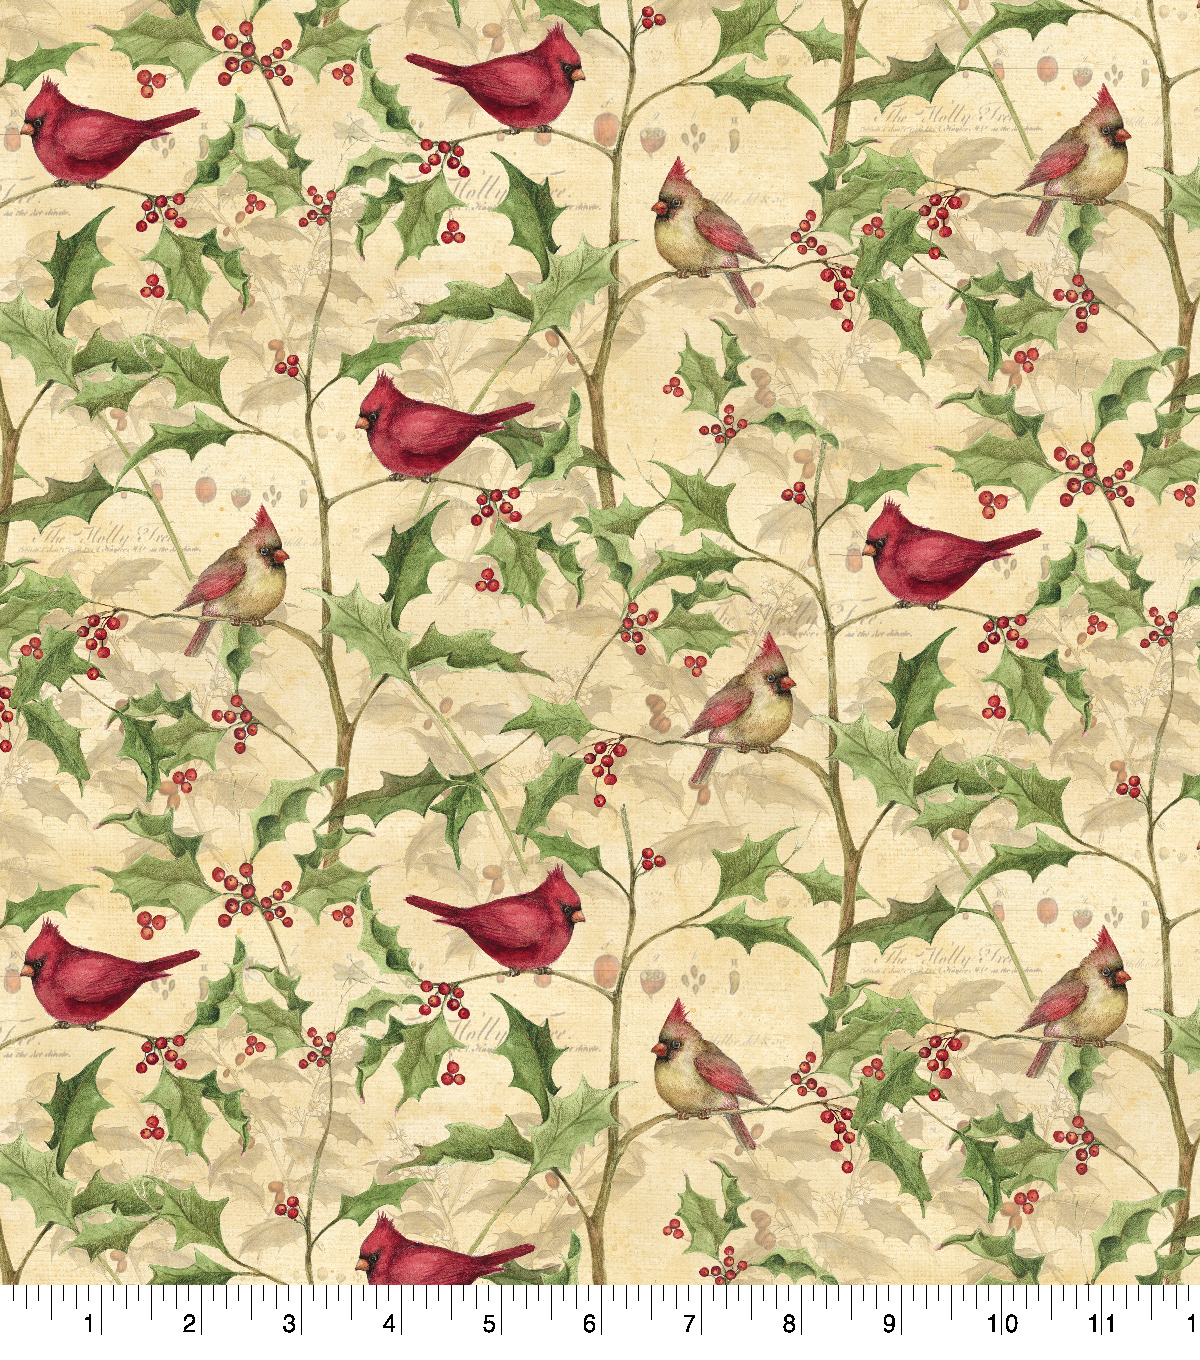 Cotton Holiday Fabric Print 43Cardinals On Vines By